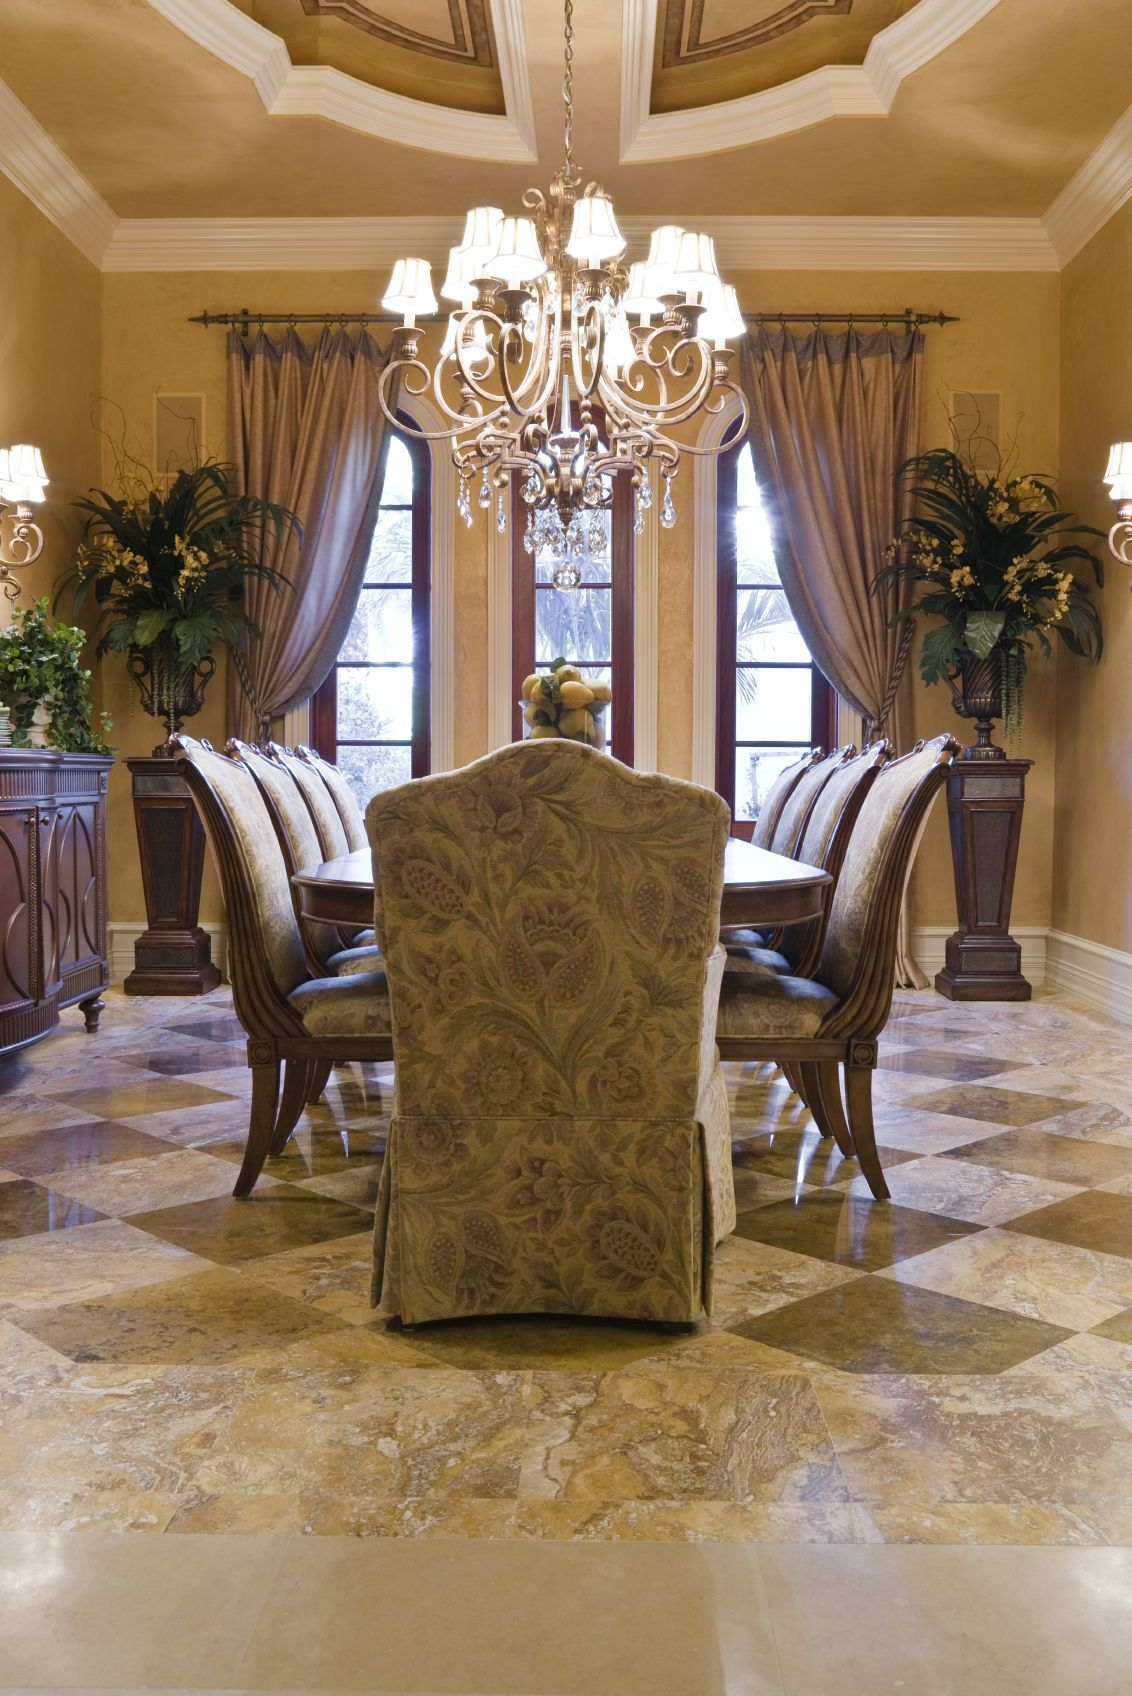 luxurious dining room amazing curtains and ceiling luxury rh pinterest com au